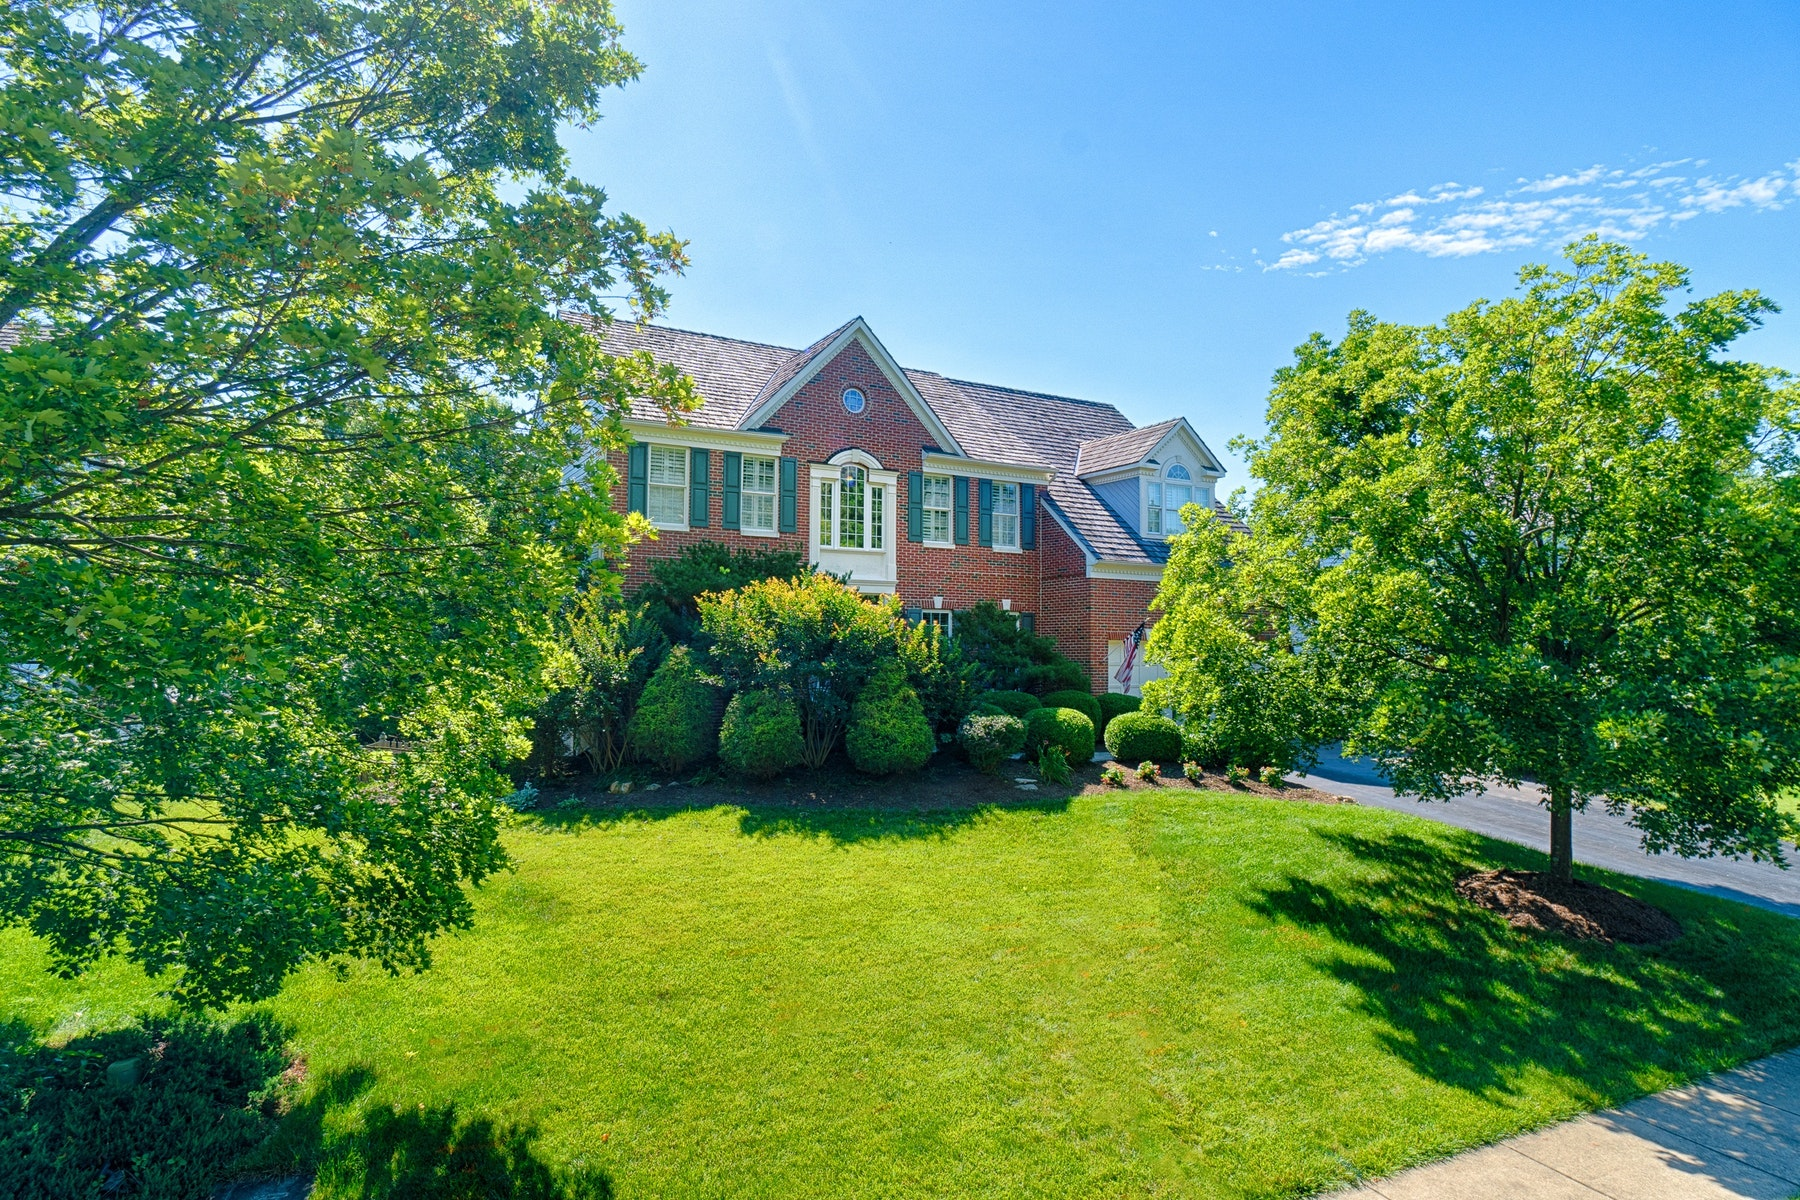 Single Family Home for Sale at Woodlea Manor, 622 Meade SW Leesburg, Virginia 20175 United States